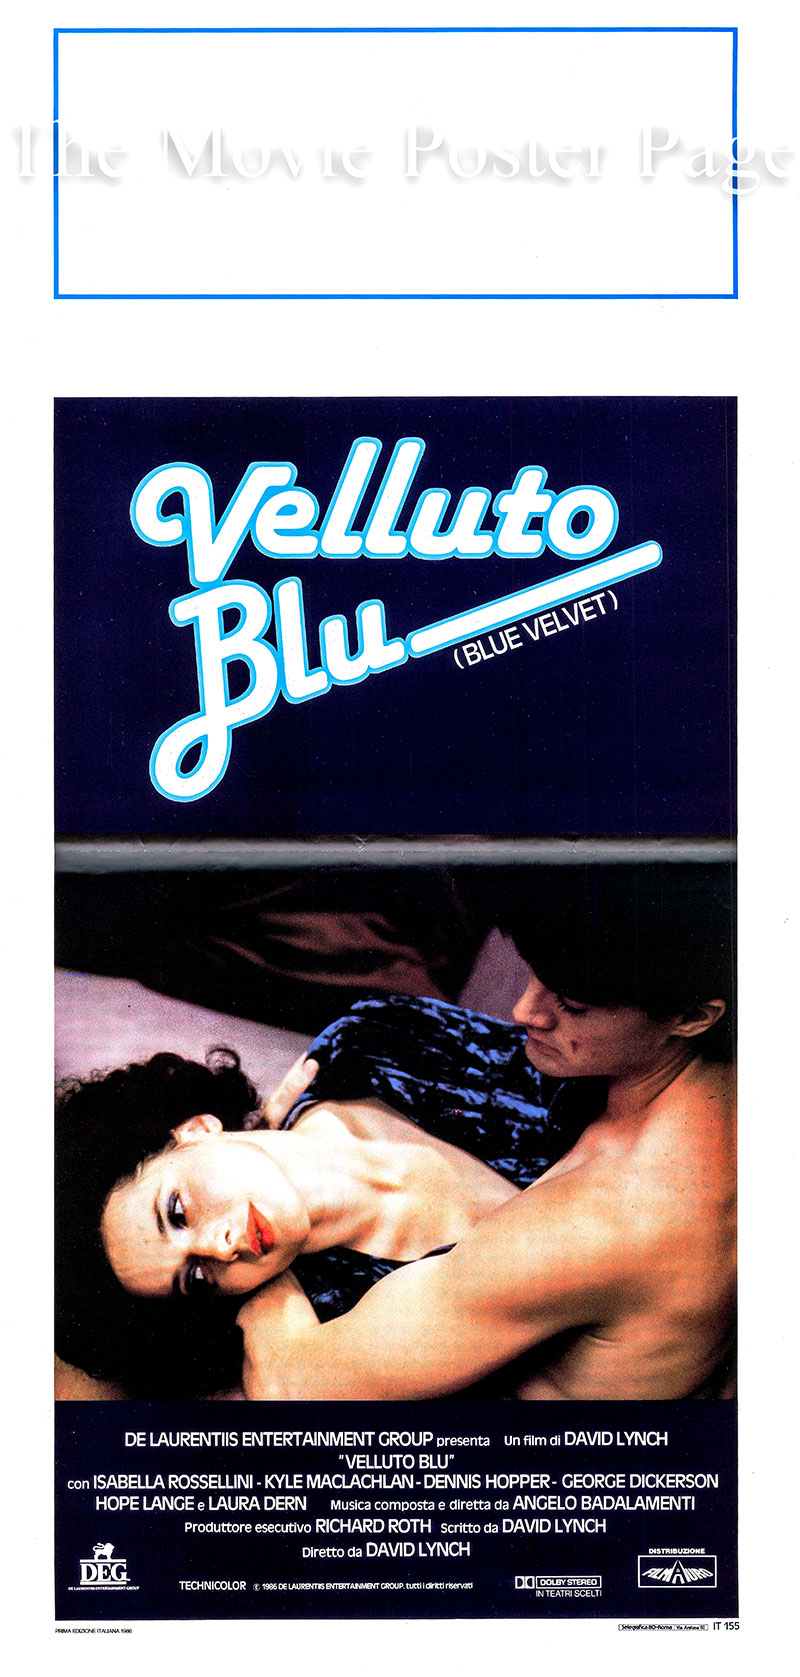 Pictured is an Italian locandina promotional poster for the 1986 David Lynch film Blue Velvet starring Isabella Rossellini as Dorothy Vallens.